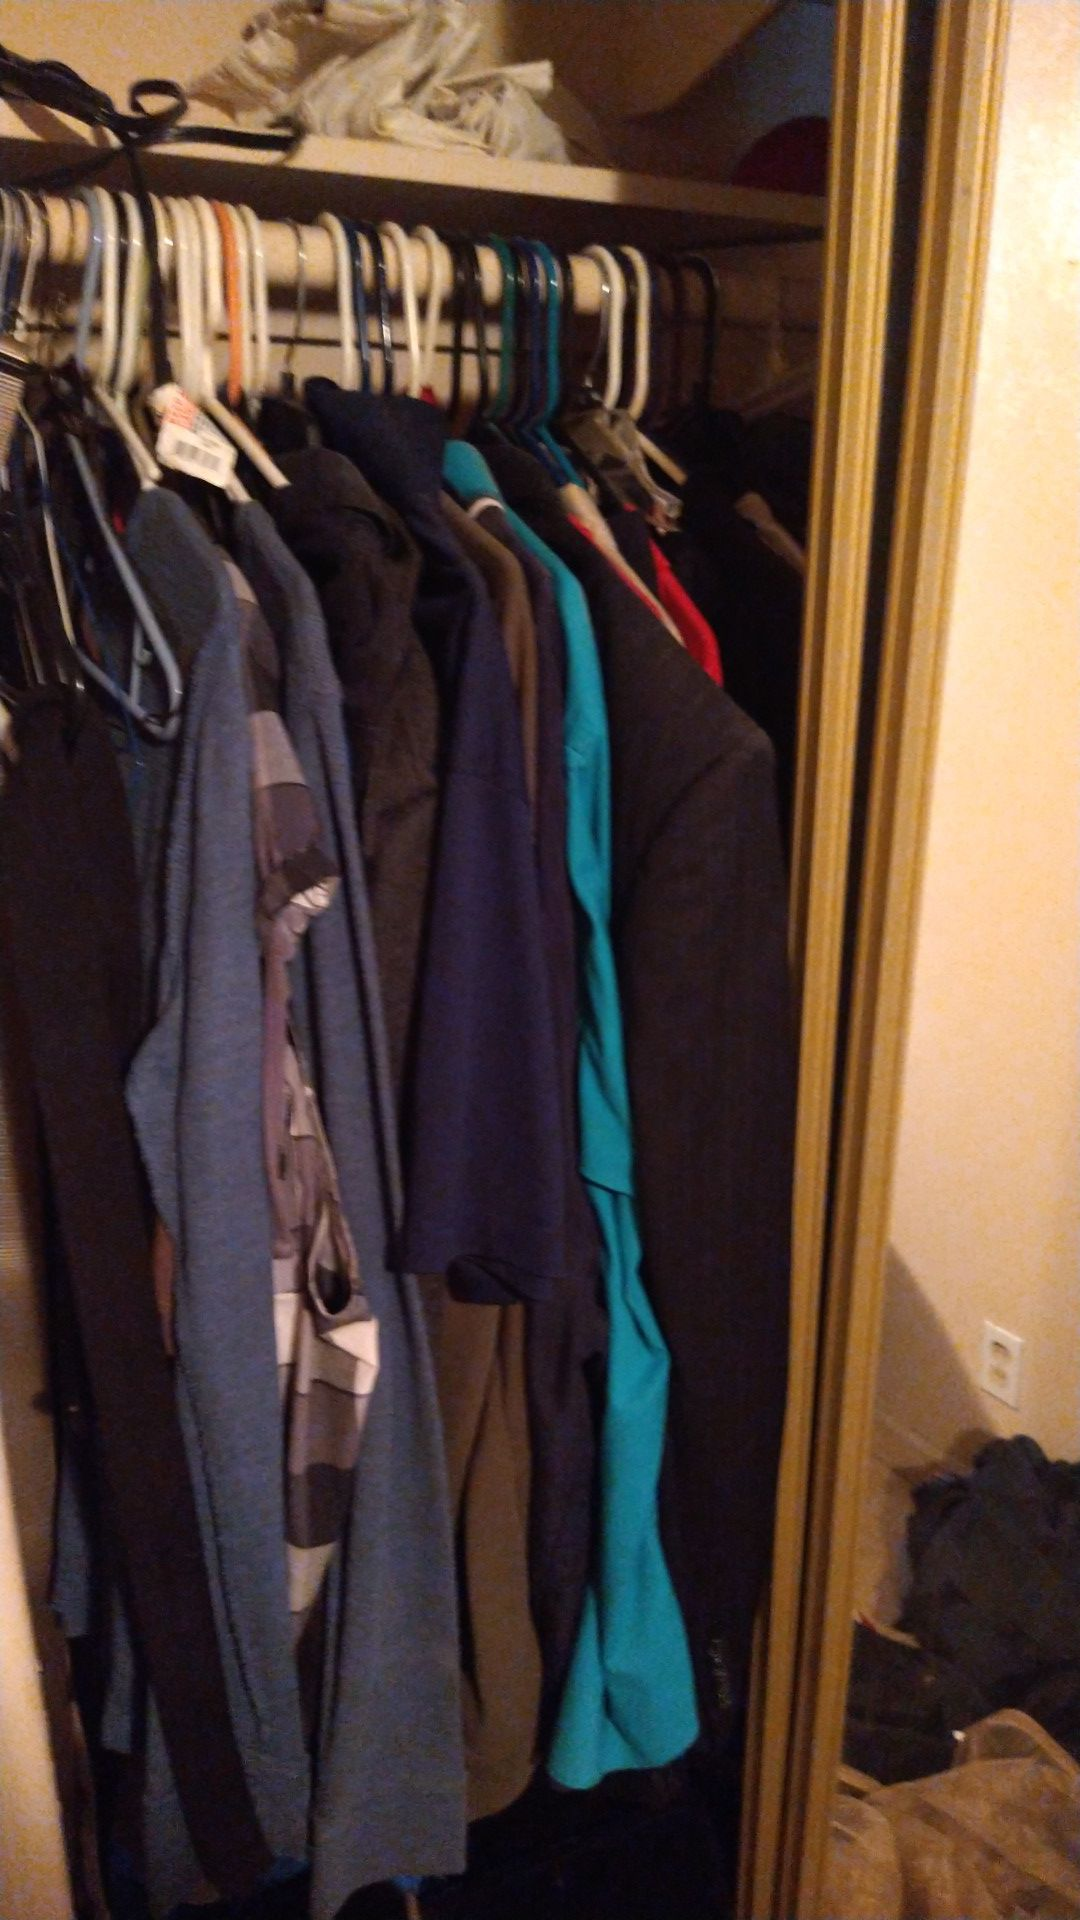 Variety of clothes